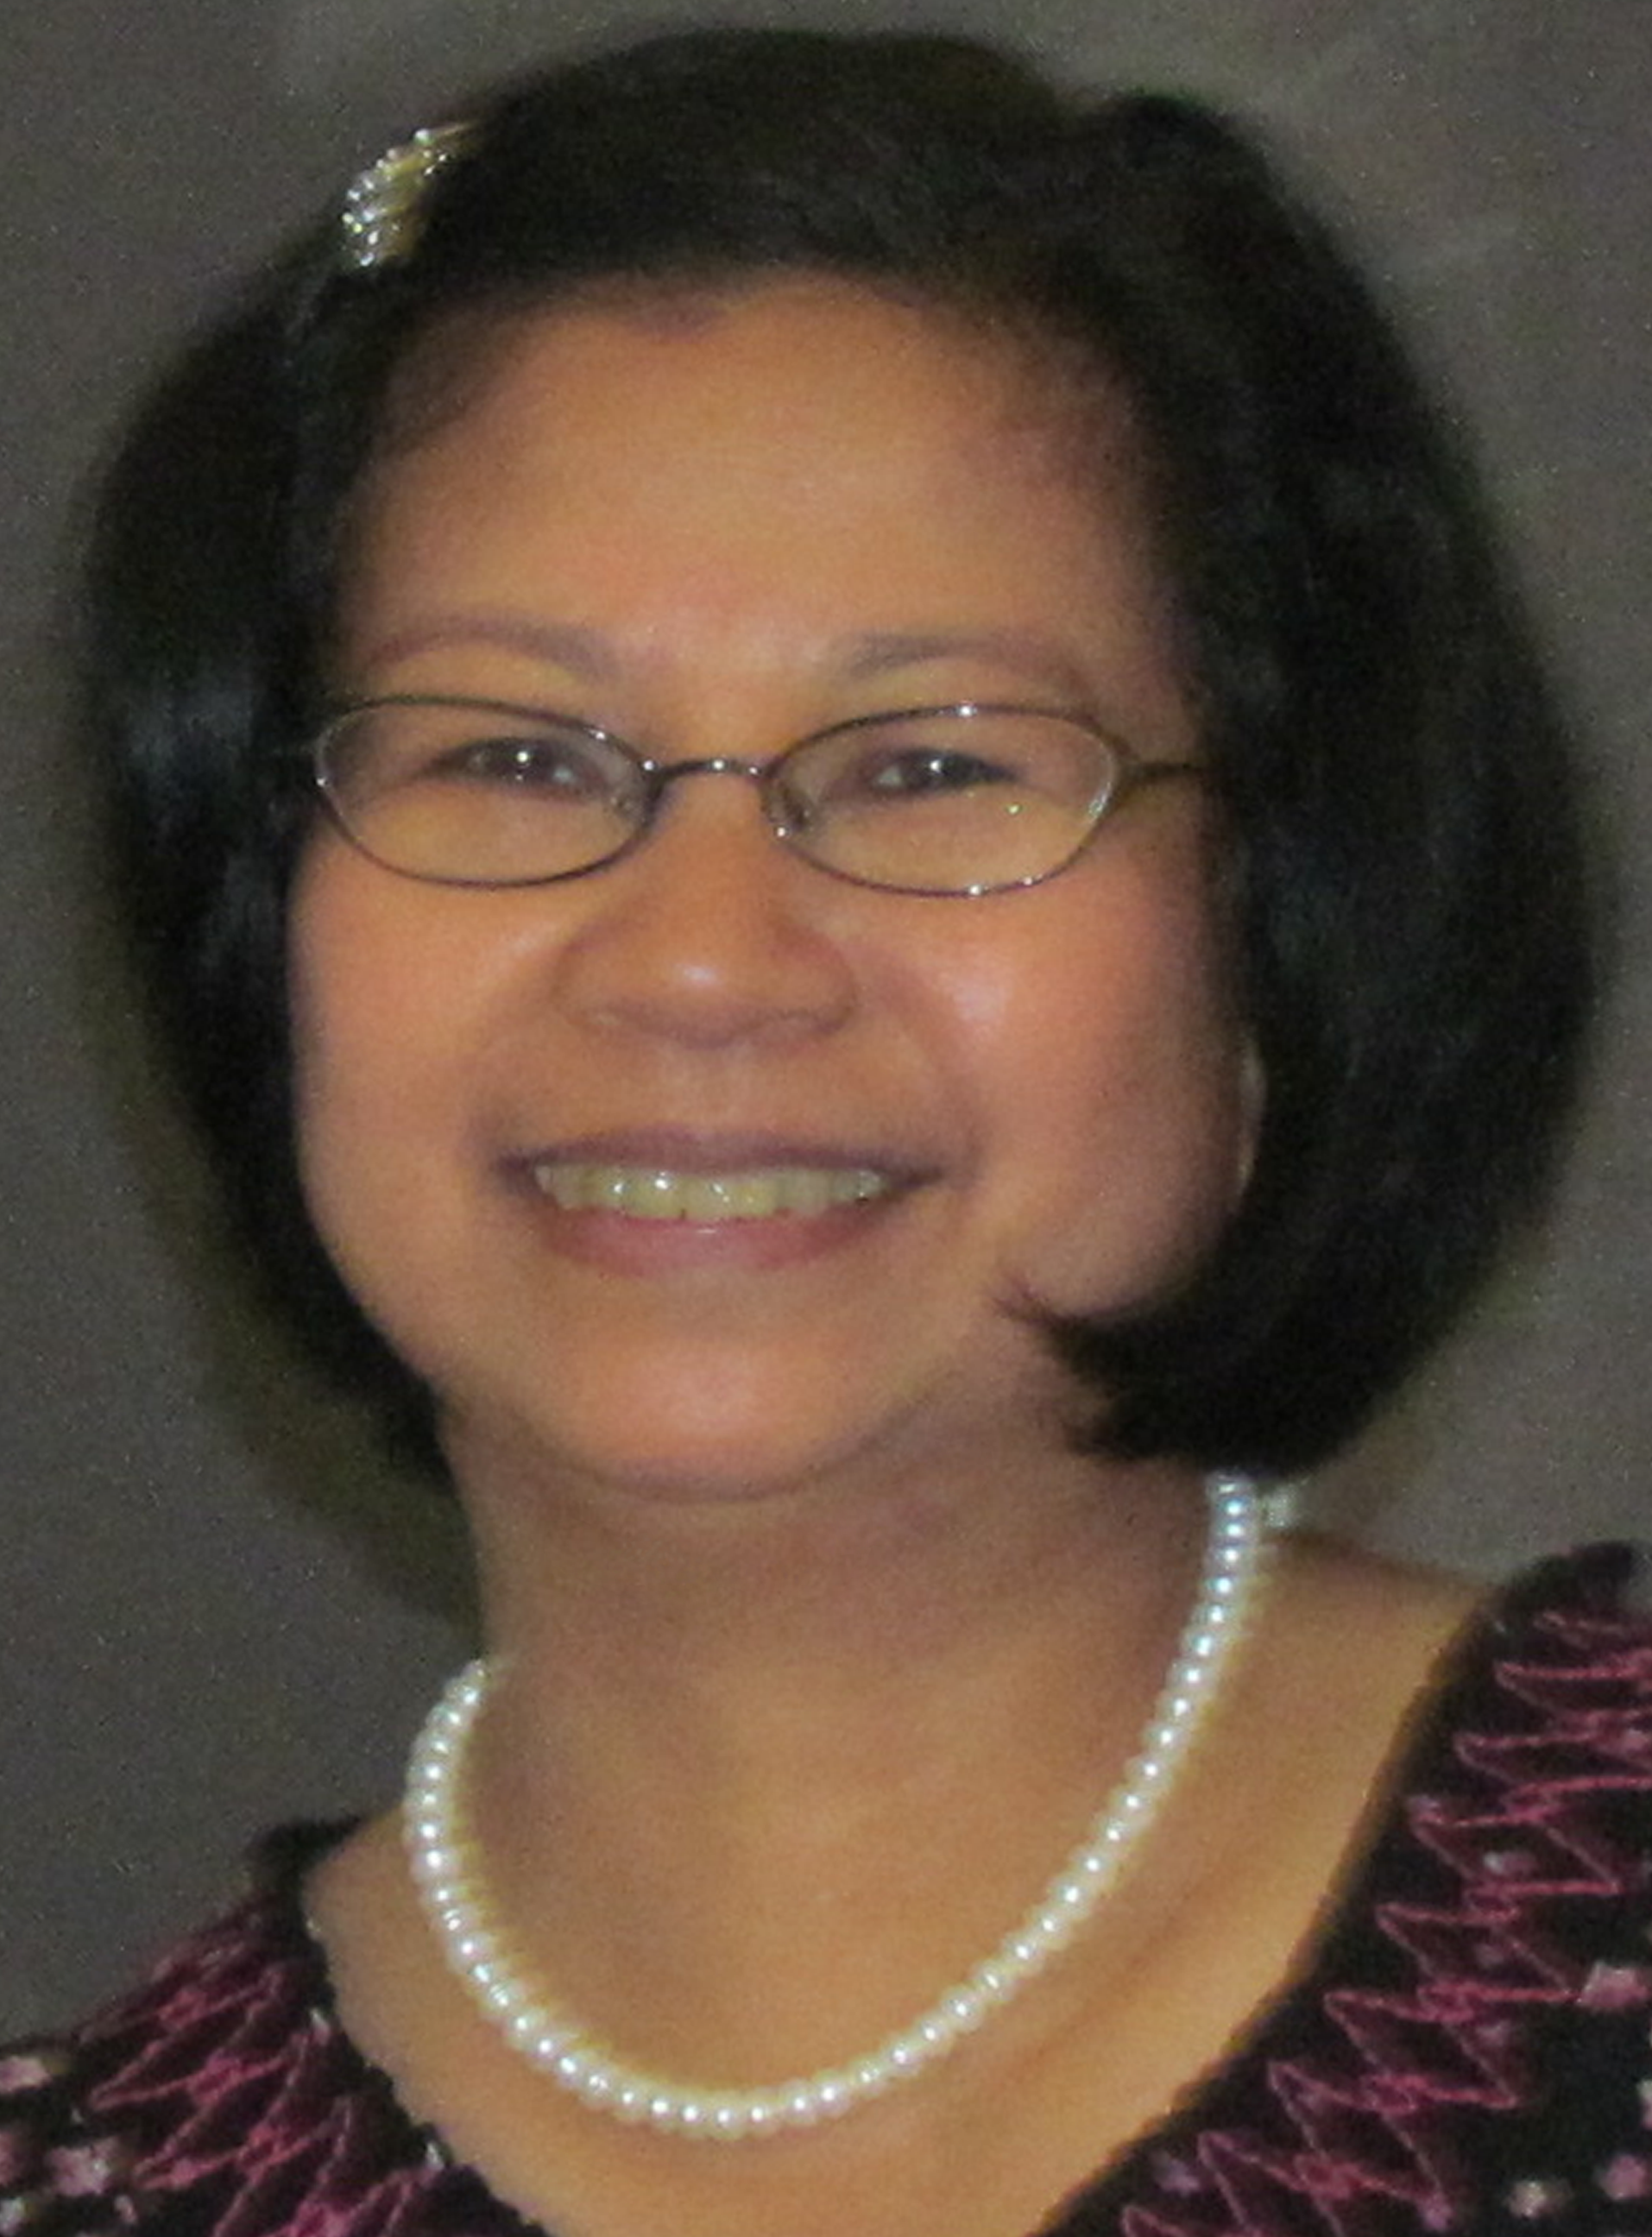 Photo of Ruangelie Edrada-Ebel